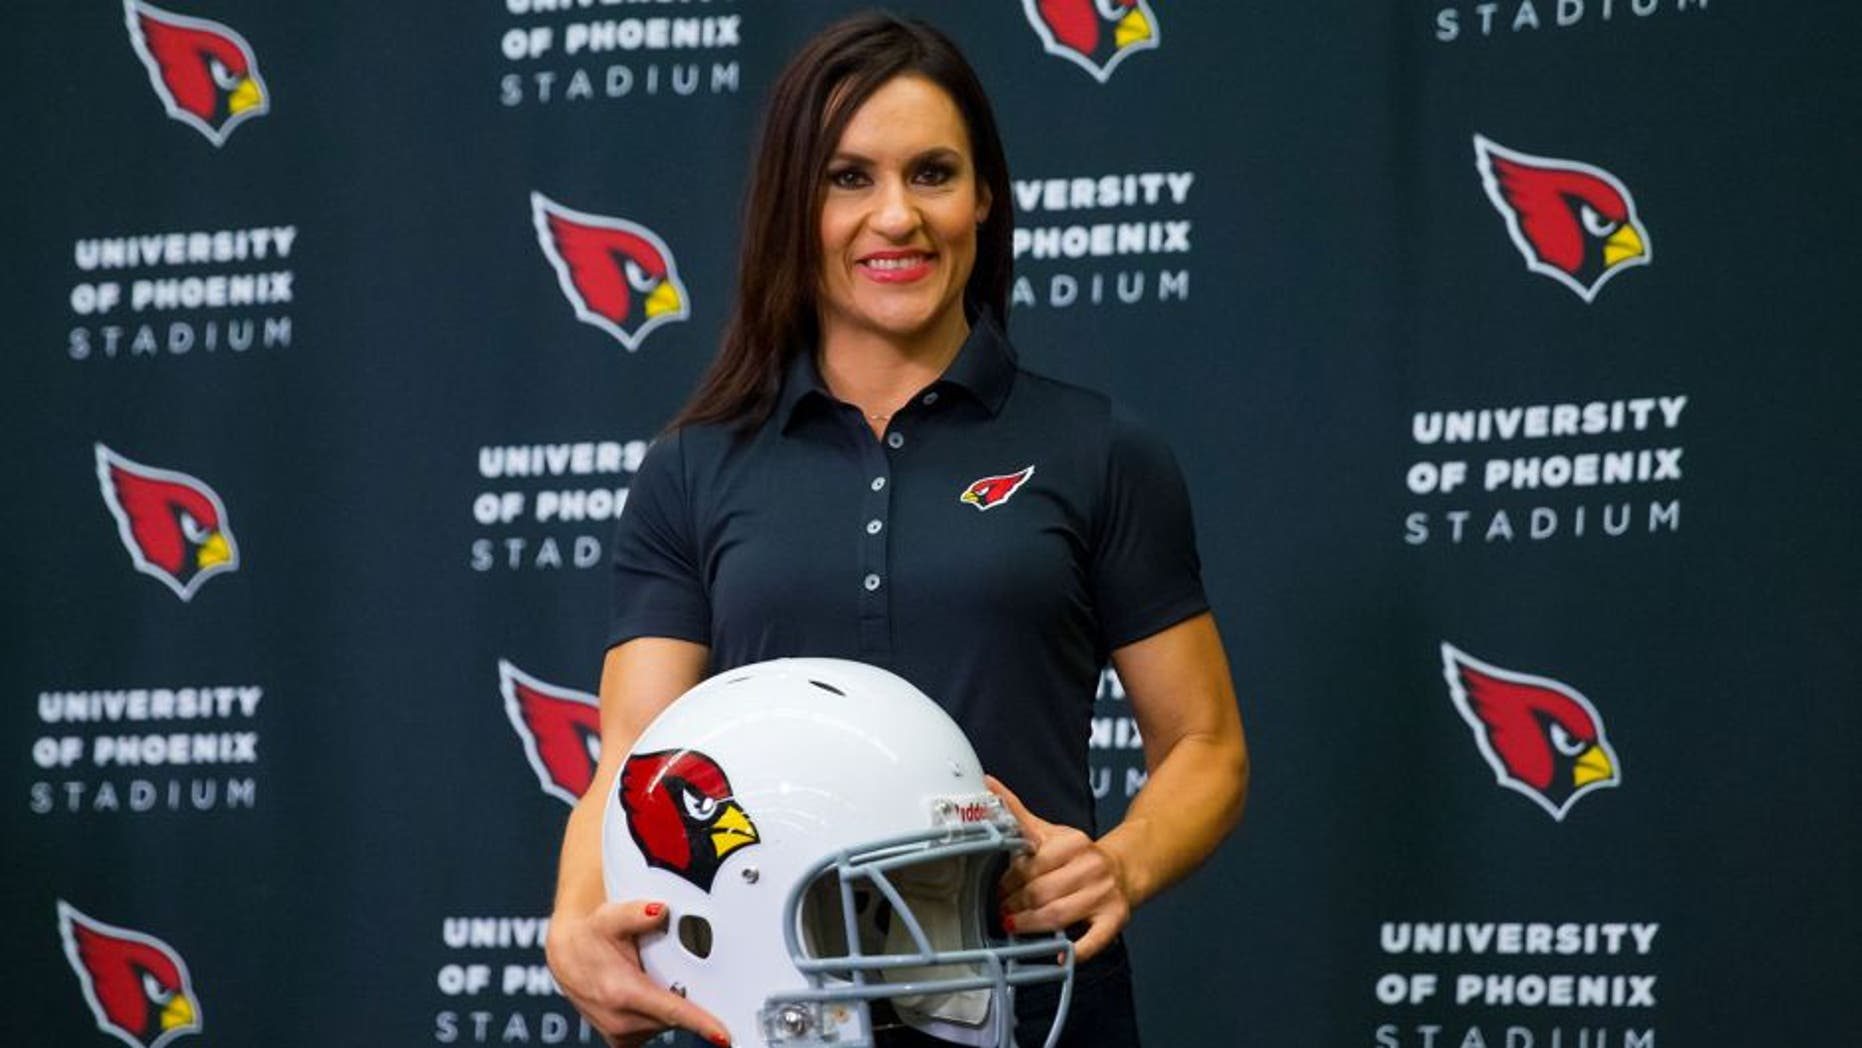 Jul 28, 2015; Tempe, AZ, USA; Arizona Cardinals inside linebackers intern and preseason coach Jen Welter holds a helmet as she poses for a photo during a press conference at the teams training facility. Mandatory Credit: Mark J. Rebilas-USA TODAY Sports